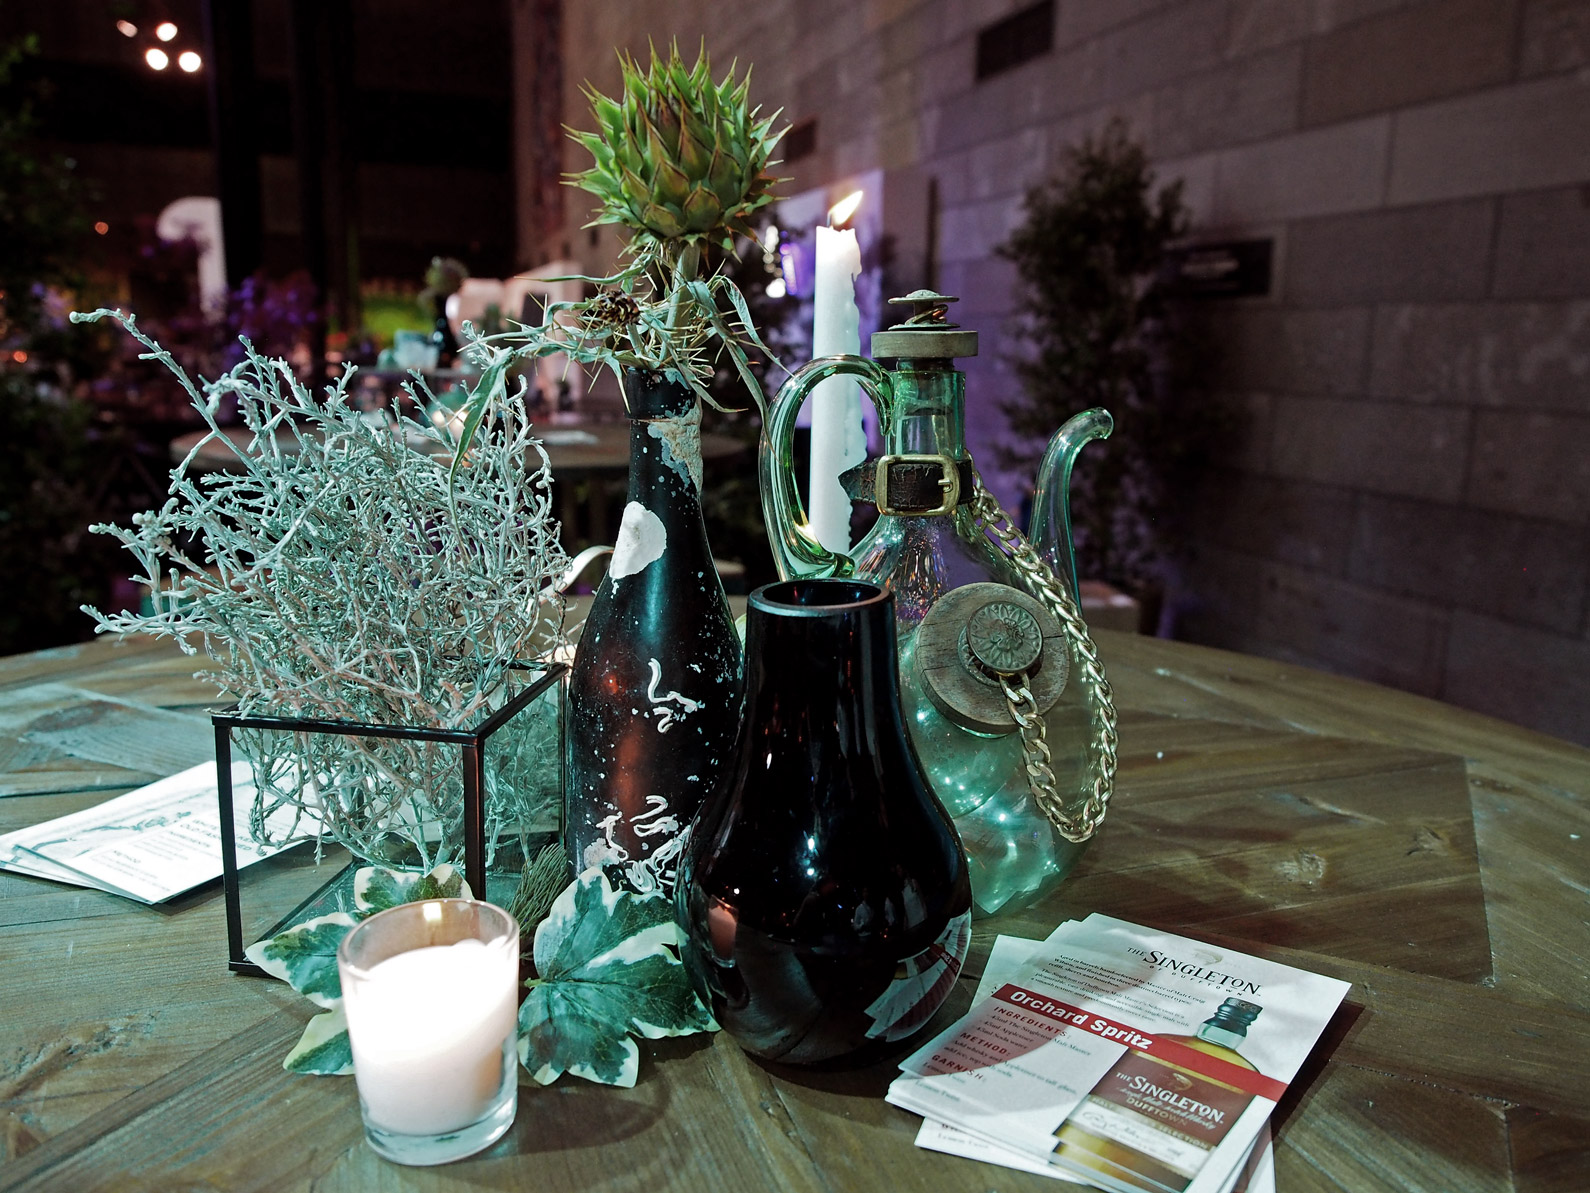 Studio-Mimi-Moon-Styling-at-NGV-for-Dan-Murpheys-Conference-Singleton-Whisky-and-Johnny-Walker-White-Walker-Limited-Edition-Bar-event